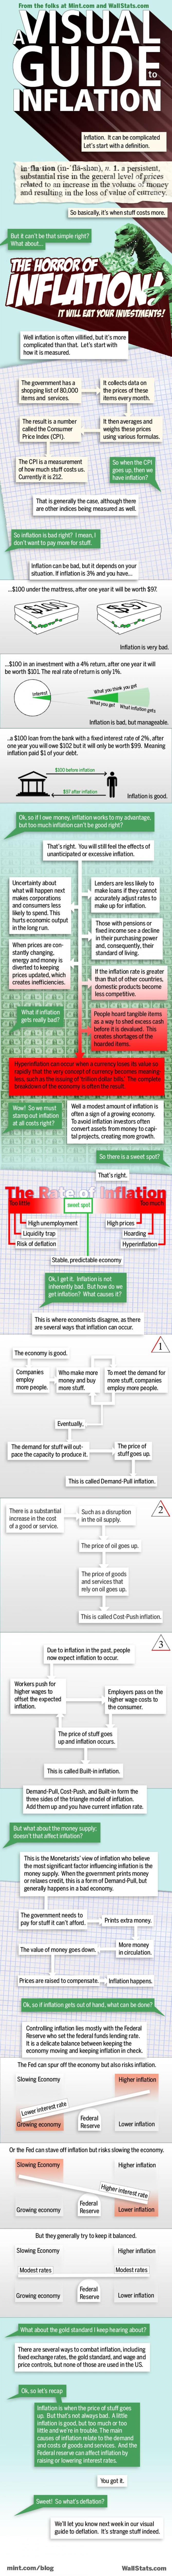 Best 25 macroeconomics study guide ideas on pinterest economics a visual guide to inflation infographic fandeluxe Image collections